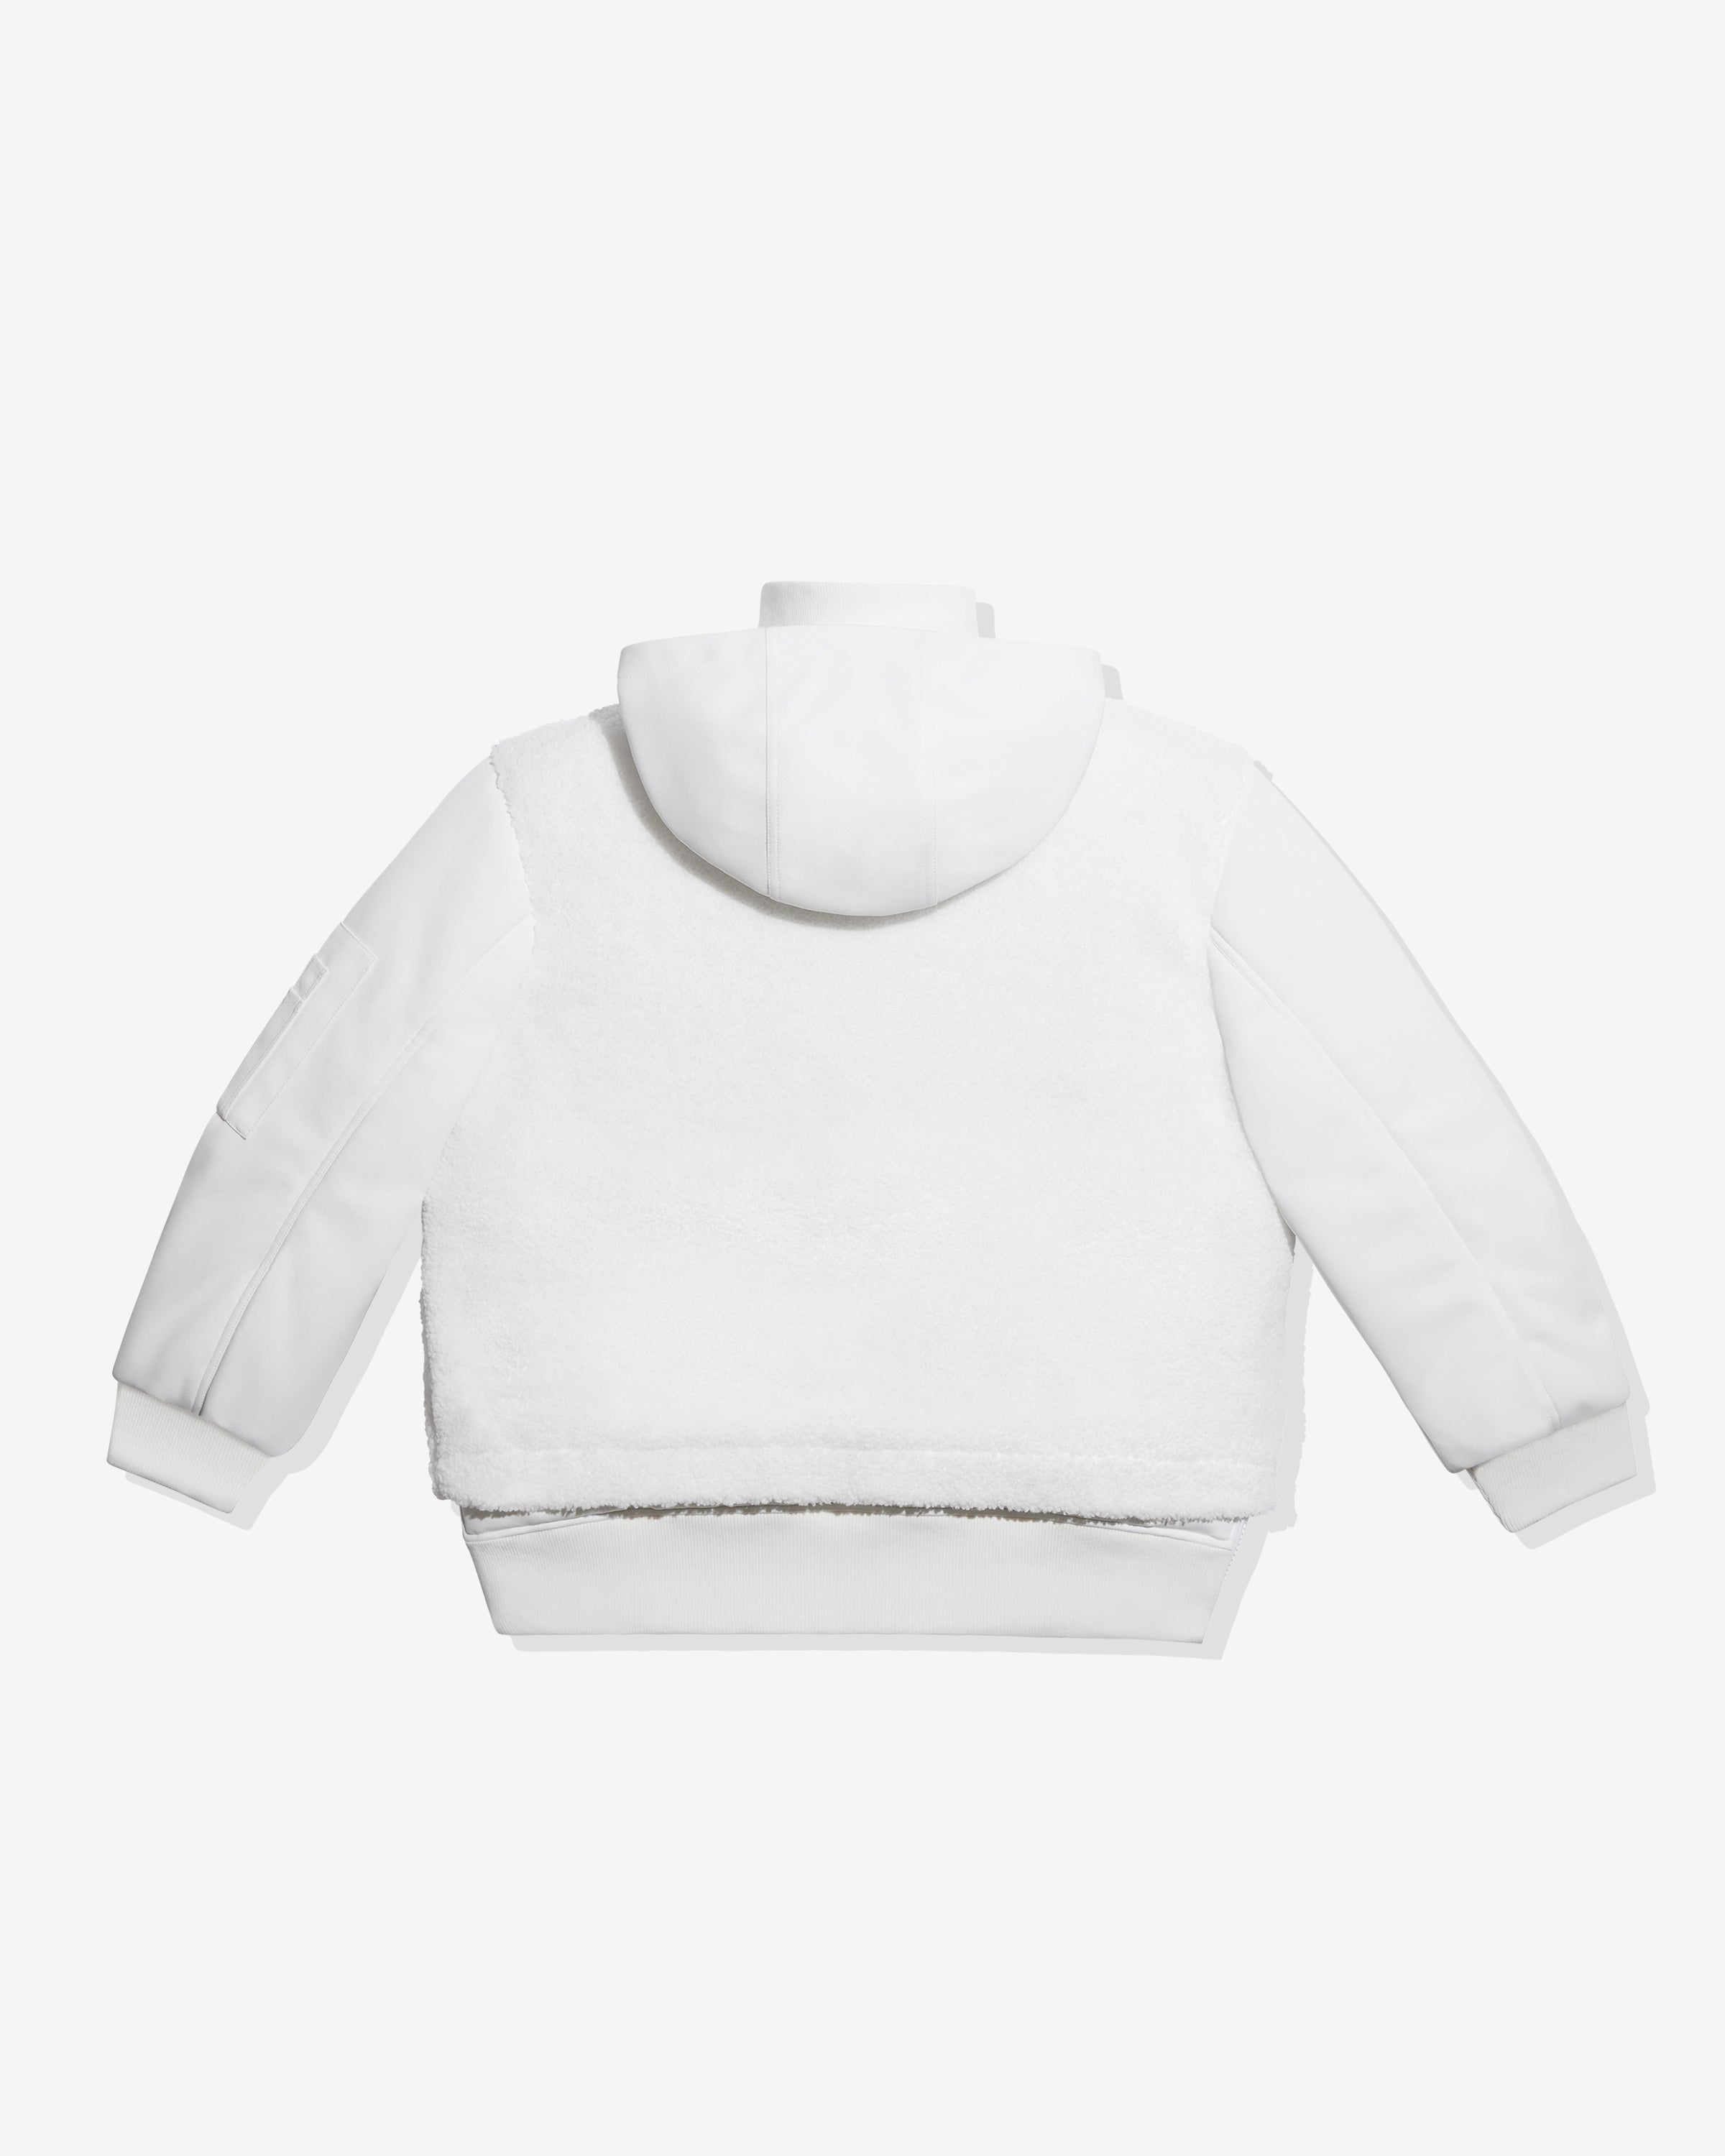 ADIDAS X IVY PARK 1/2 ZIP QUILTED SHERPA JACKET - COREWHITE